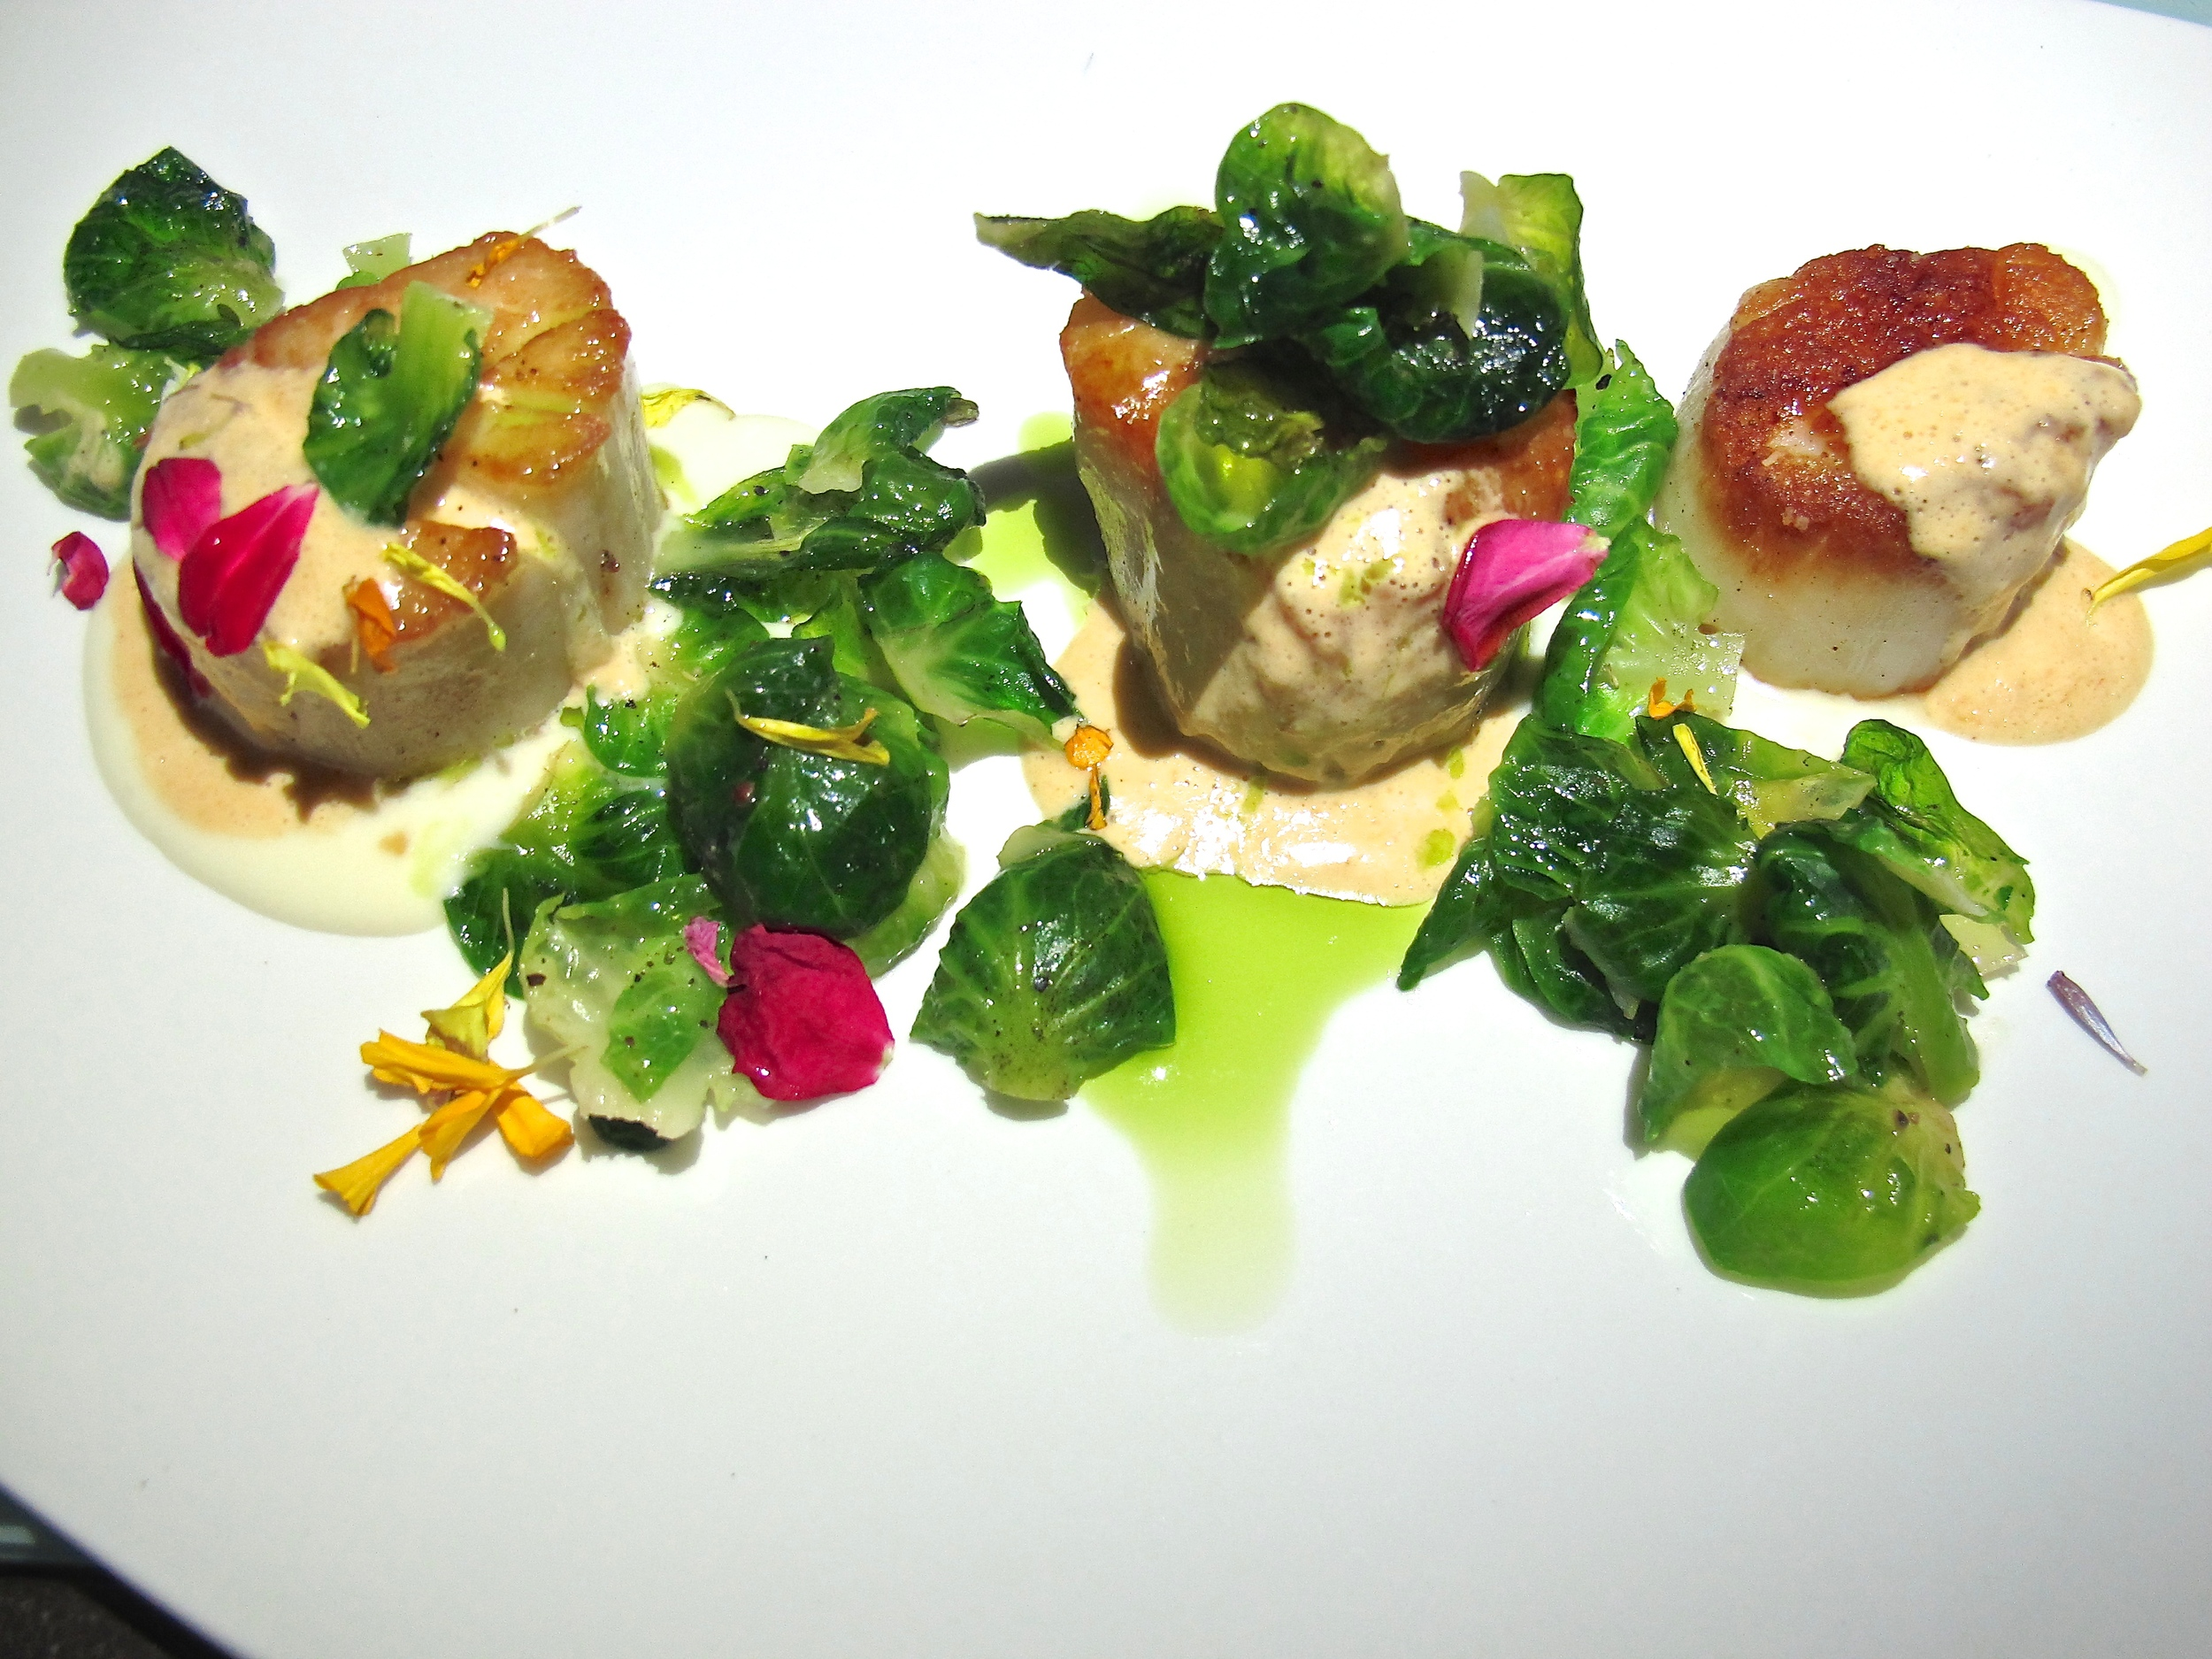 Cast and Plow's scallops